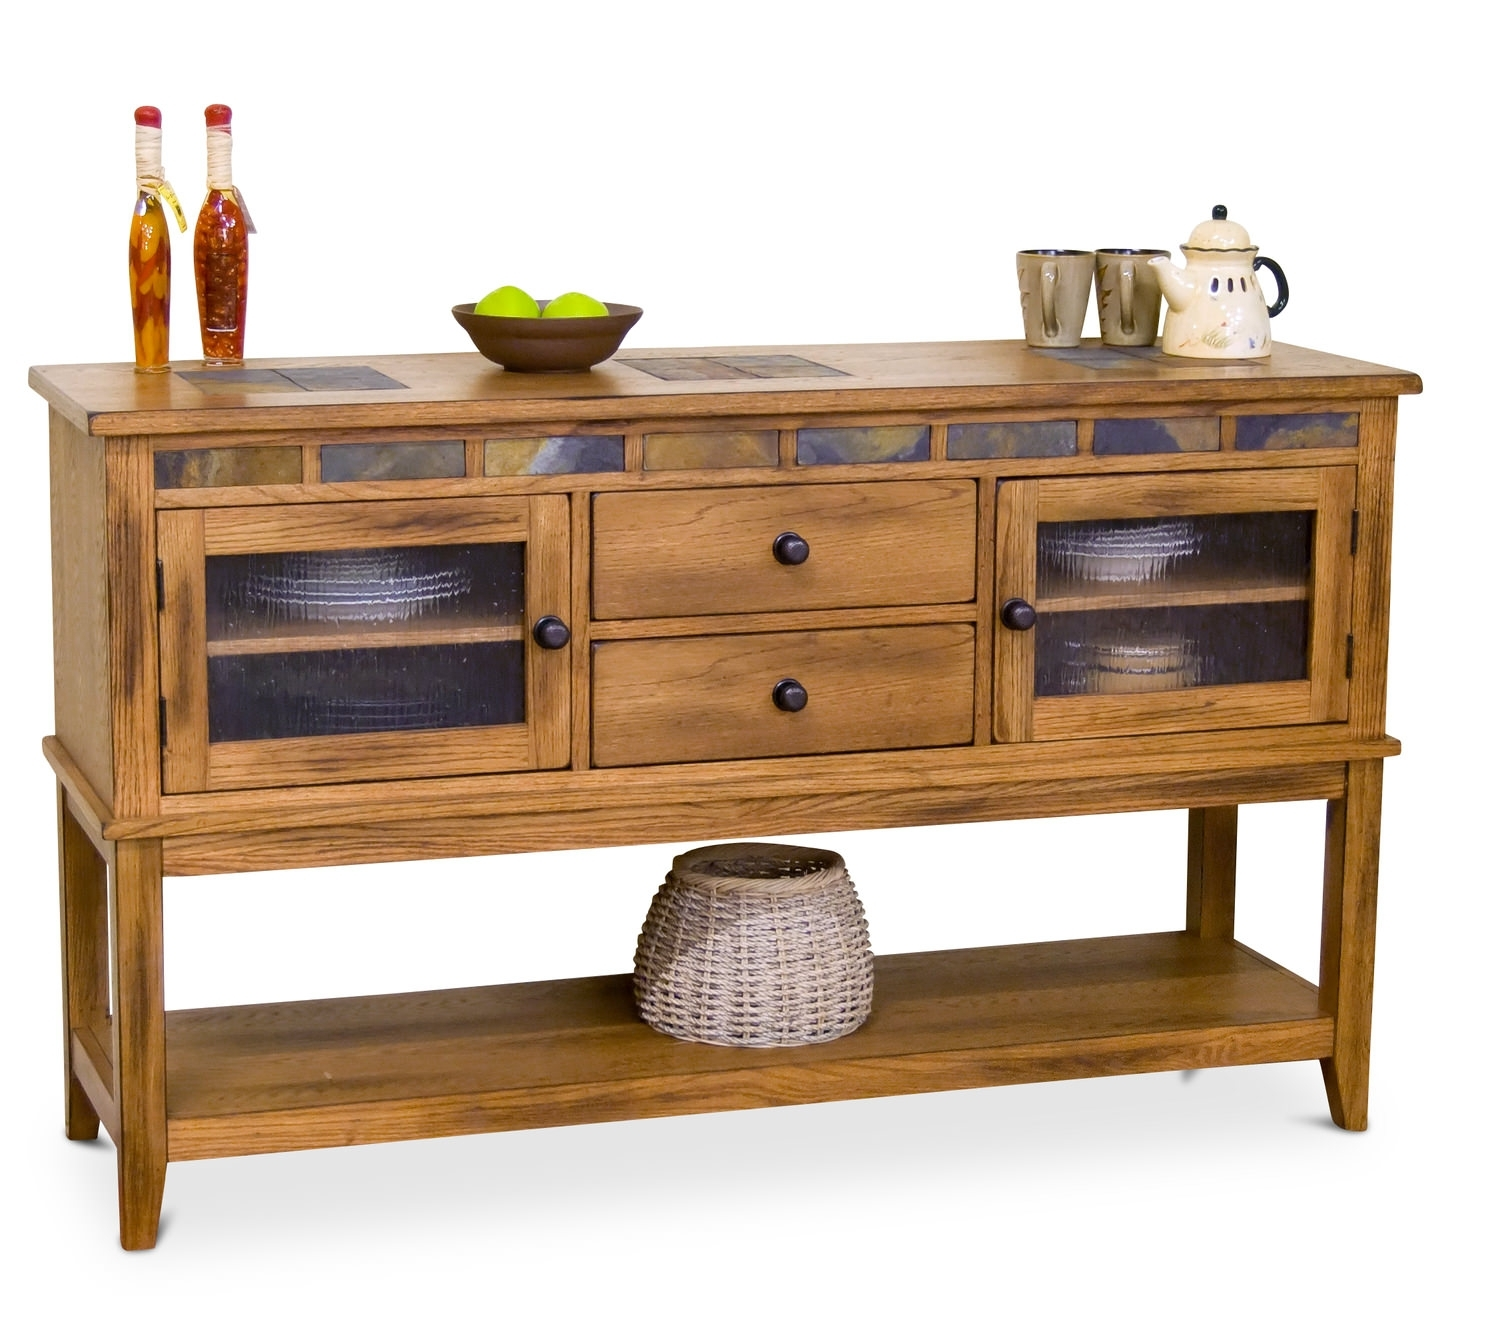 Buffets, China Cabinets And Sideboards – Hom Furniture Pertaining To Best And Newest Magnolia Home Dylan Sideboards By Joanna Gaines (View 10 of 20)